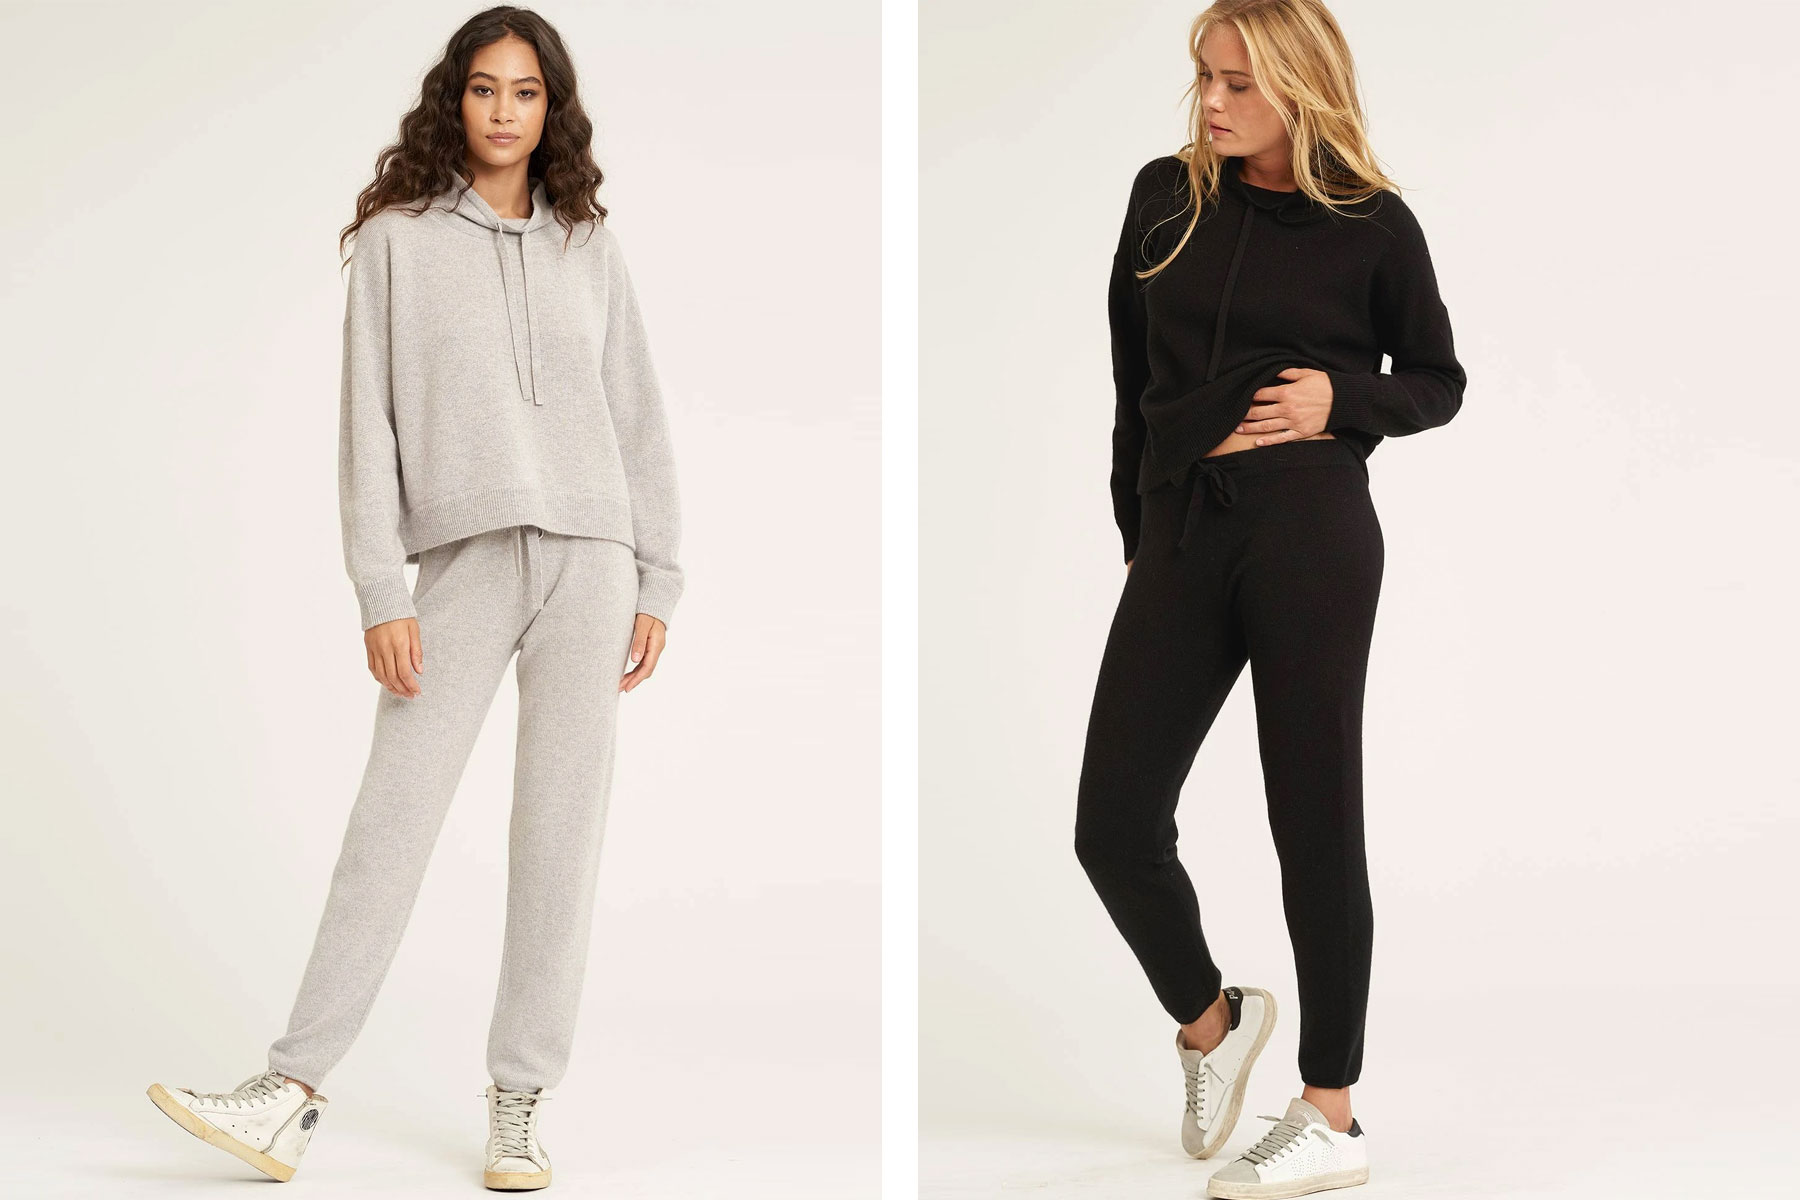 Women wearing grey and black cashmere sweatsuits